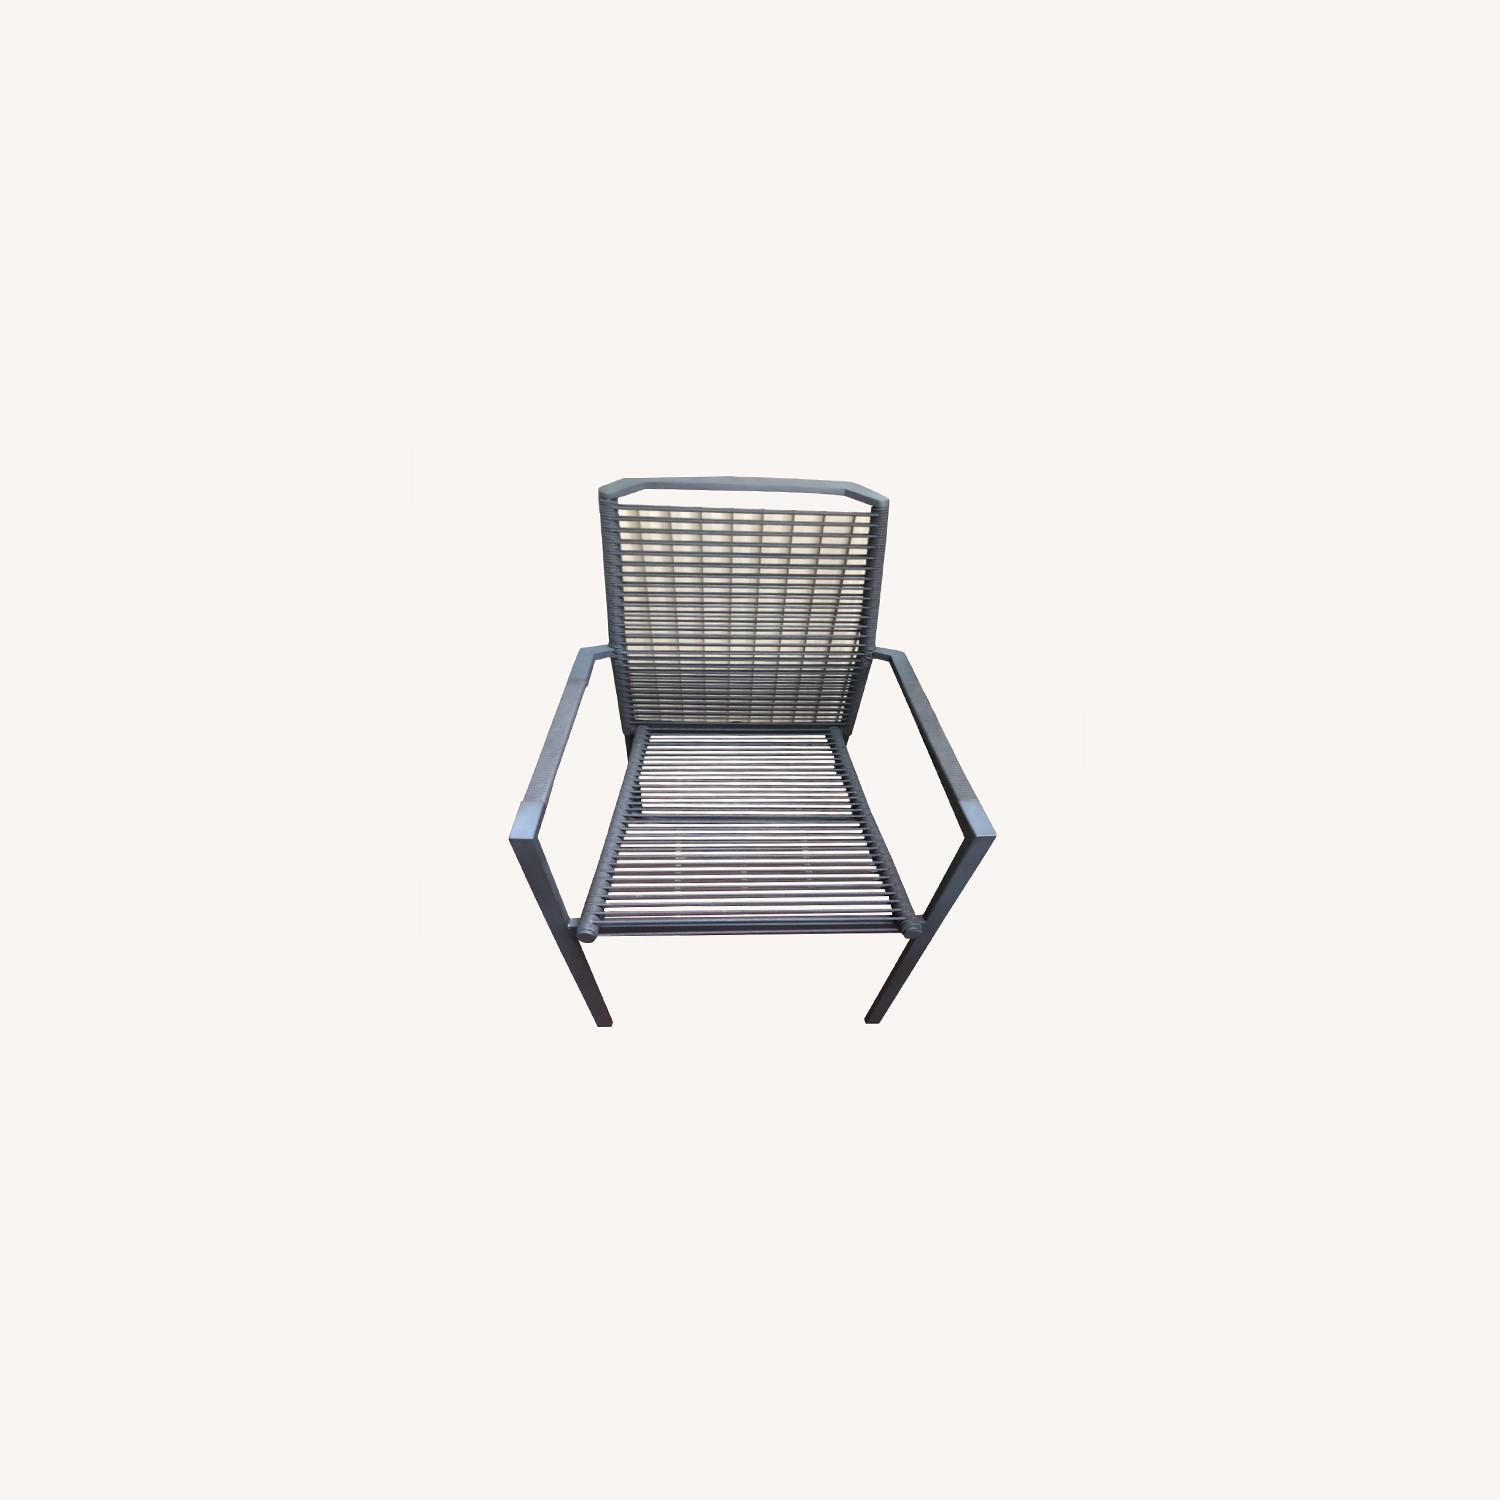 Set of 2 Cane-line Edge Outdoor Armchairs - image-0